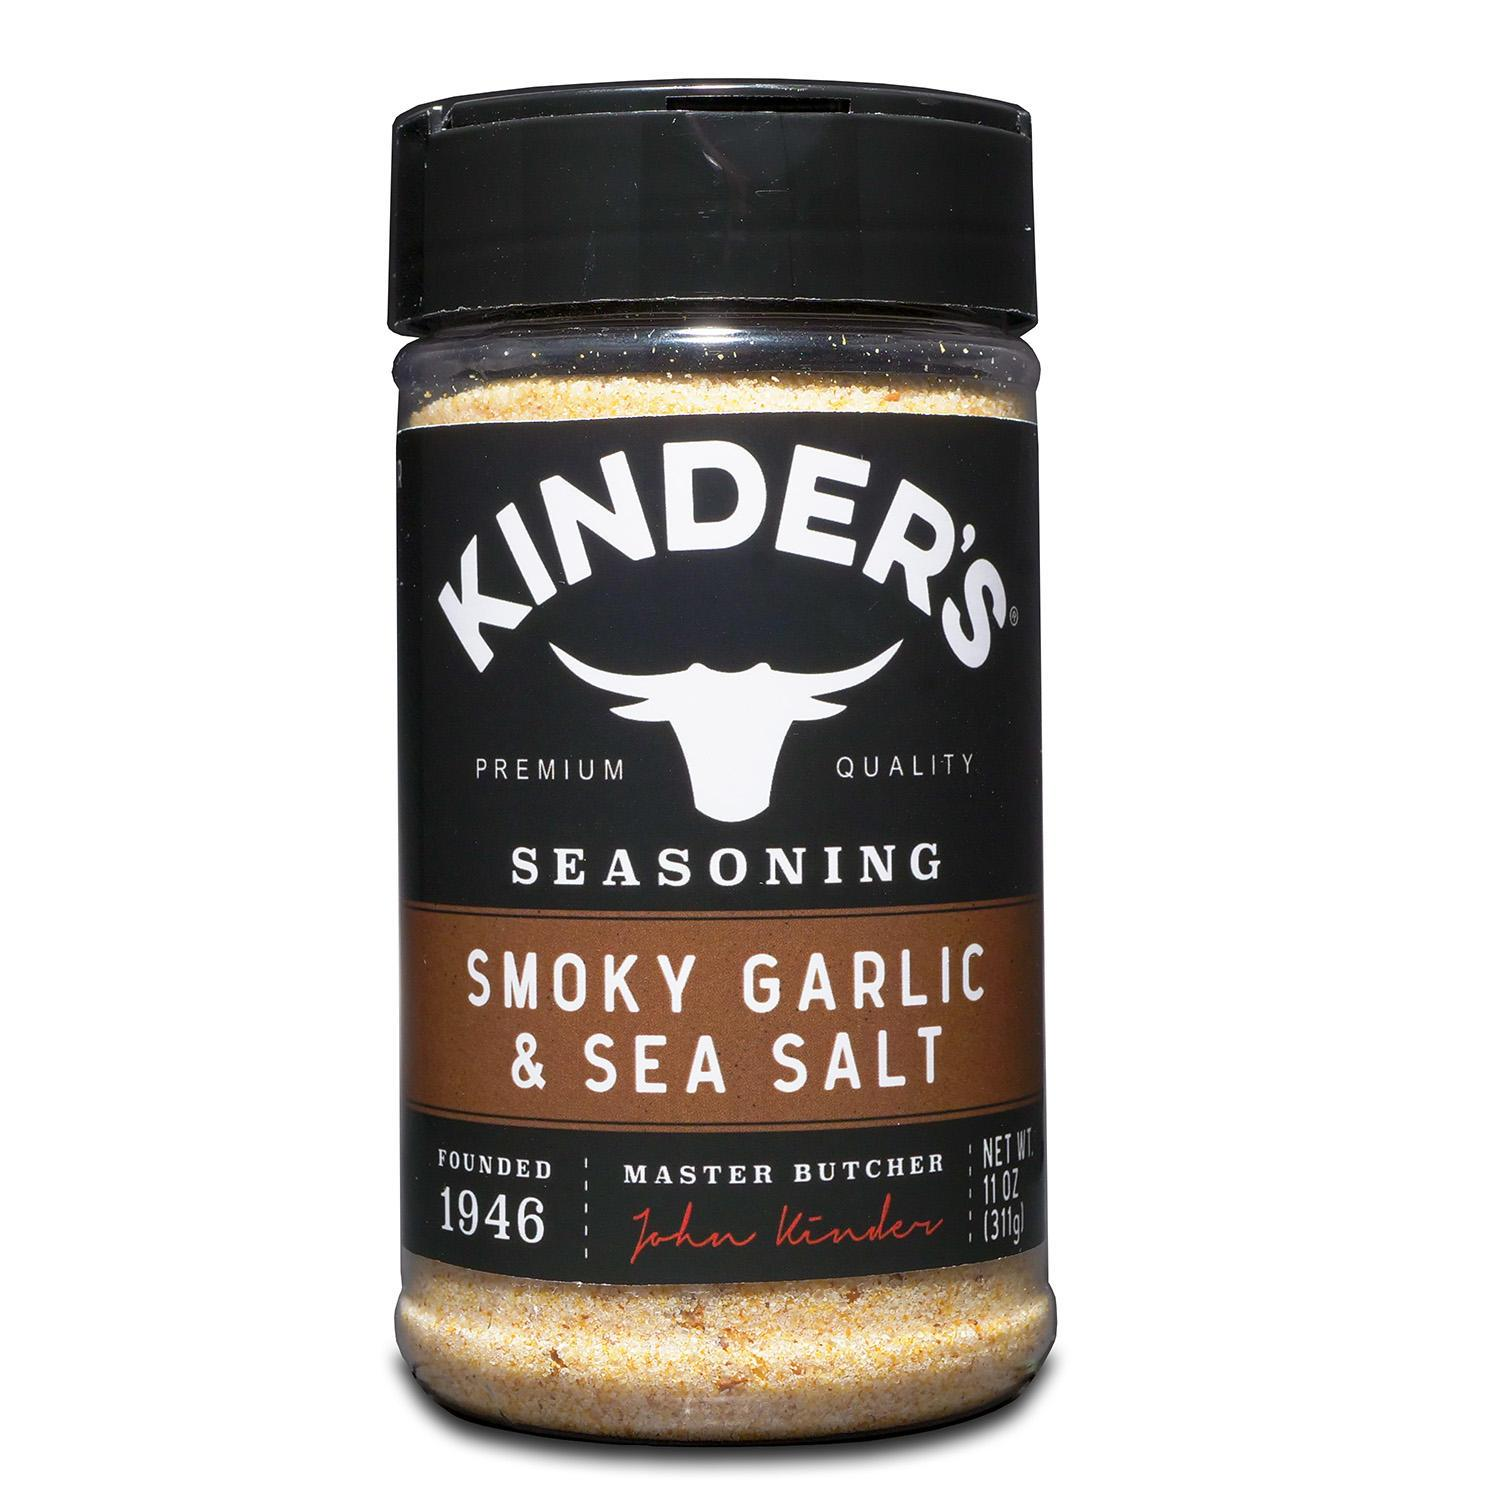 KINDER'S Seasonings KINDER'S Smoky Garlic & Sea Salt 11 Ounce